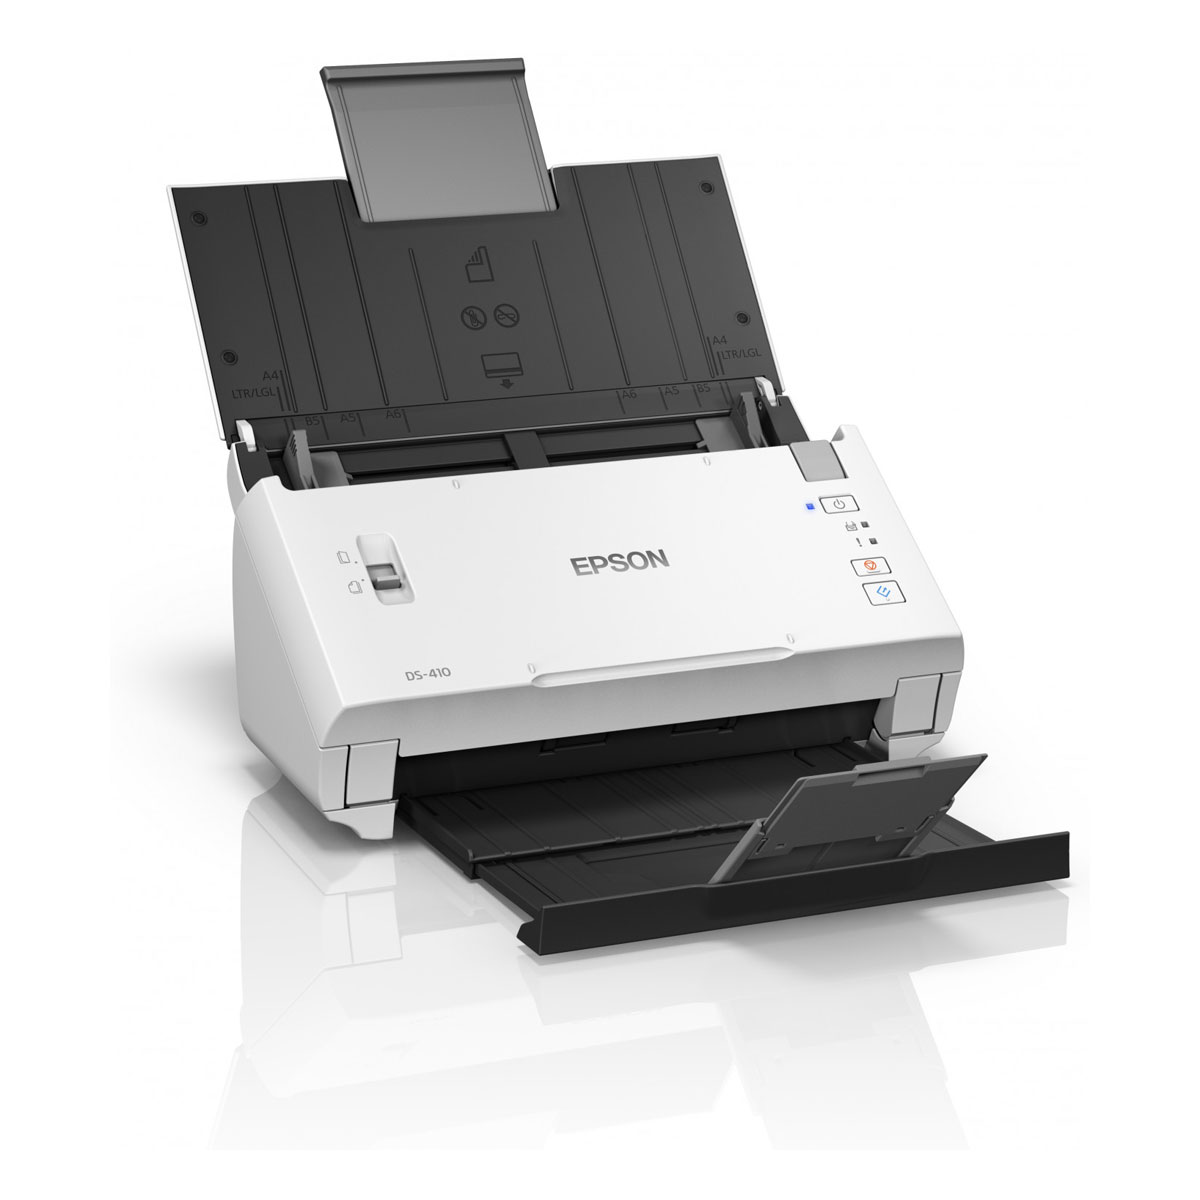 Epson WorkForce DS-410 - Scanner Epson - Cybertek.fr - 2